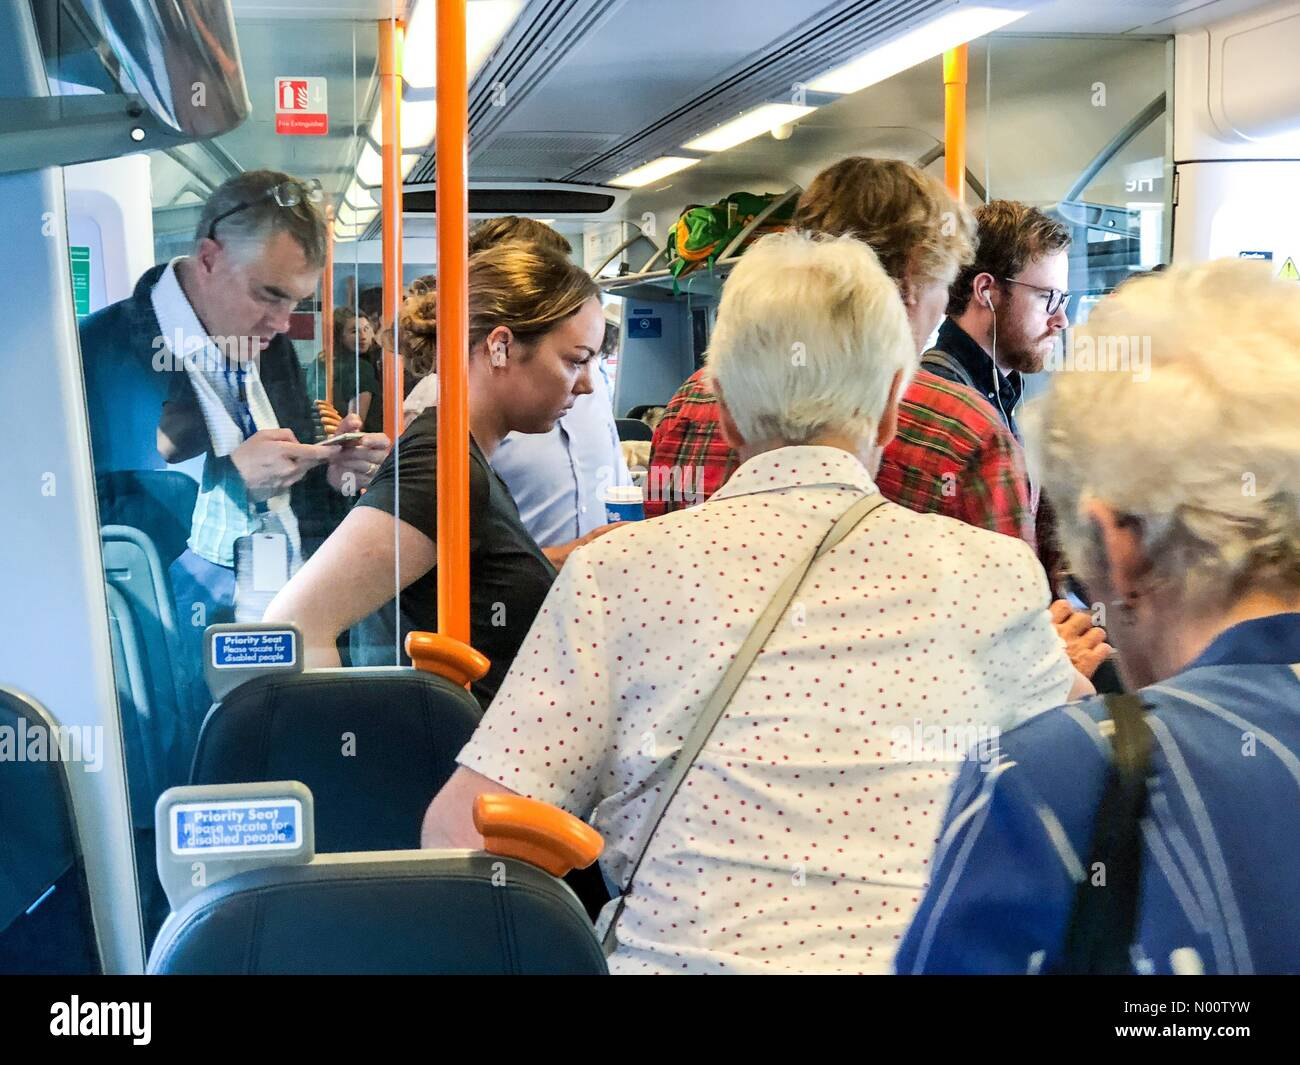 Guildford GU4UP, UK. 26th July, 2018. SW Trains, Milford, UK. Strike action by railway guards caused massive disruption today on the Portsmouth-Waterloo line. Commuters on South West trains running late. Credit: jamesjagger/StockimoNews/Alamy Live News - Stock Image